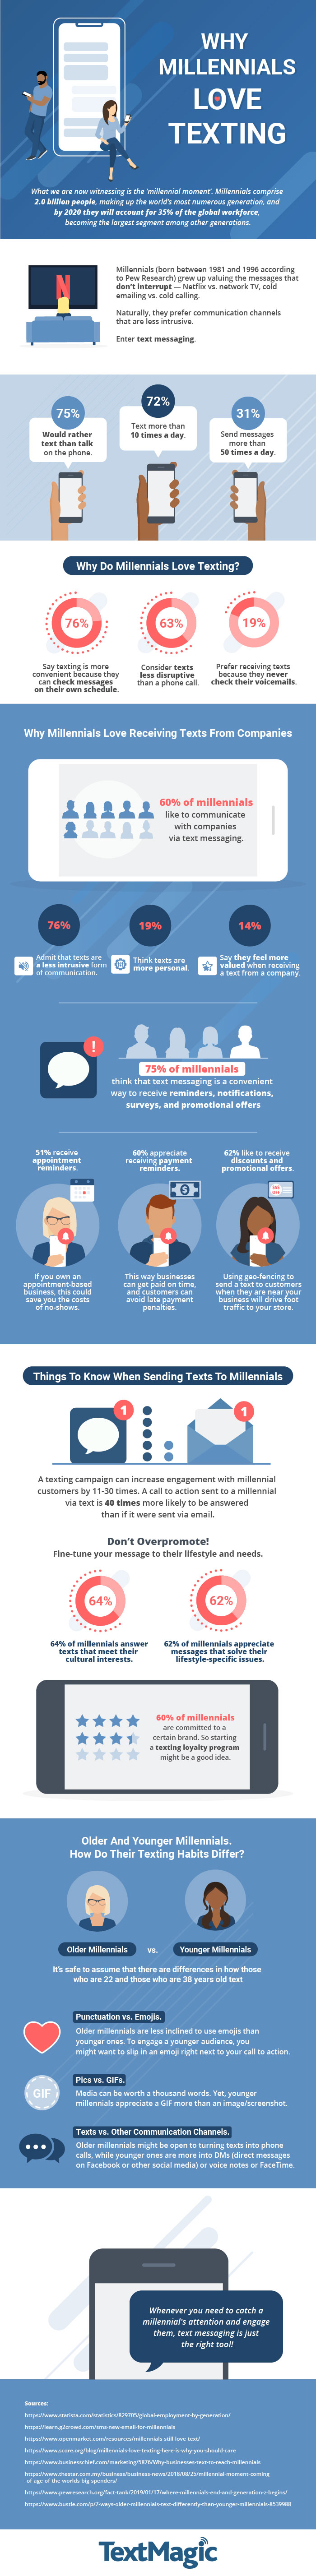 Why Millenials Love Texting-TextMagic Infographic